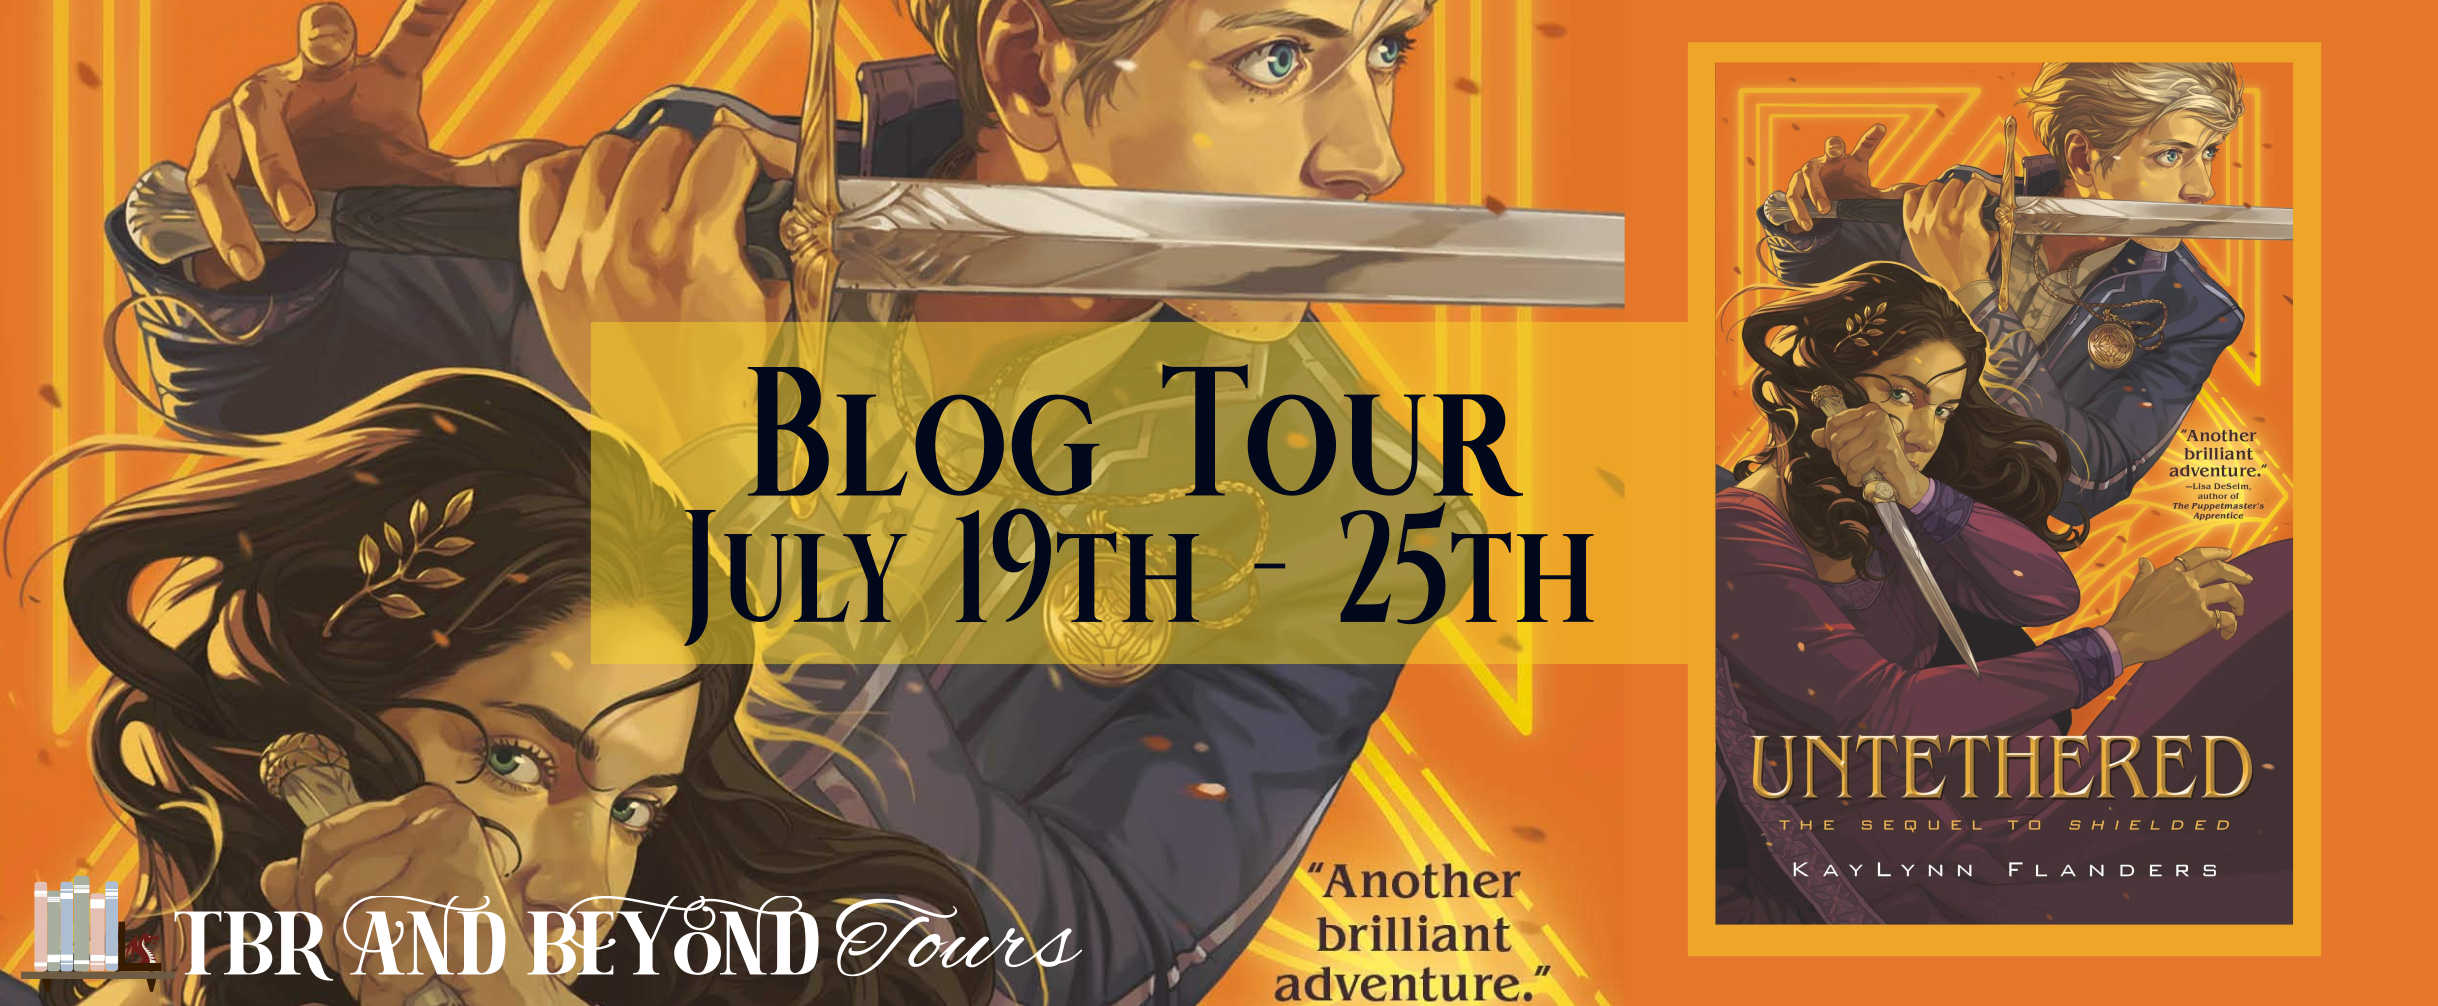 Blog Tour: Untethered by KayLynn Flanders (Spotlight + Giveaway!)